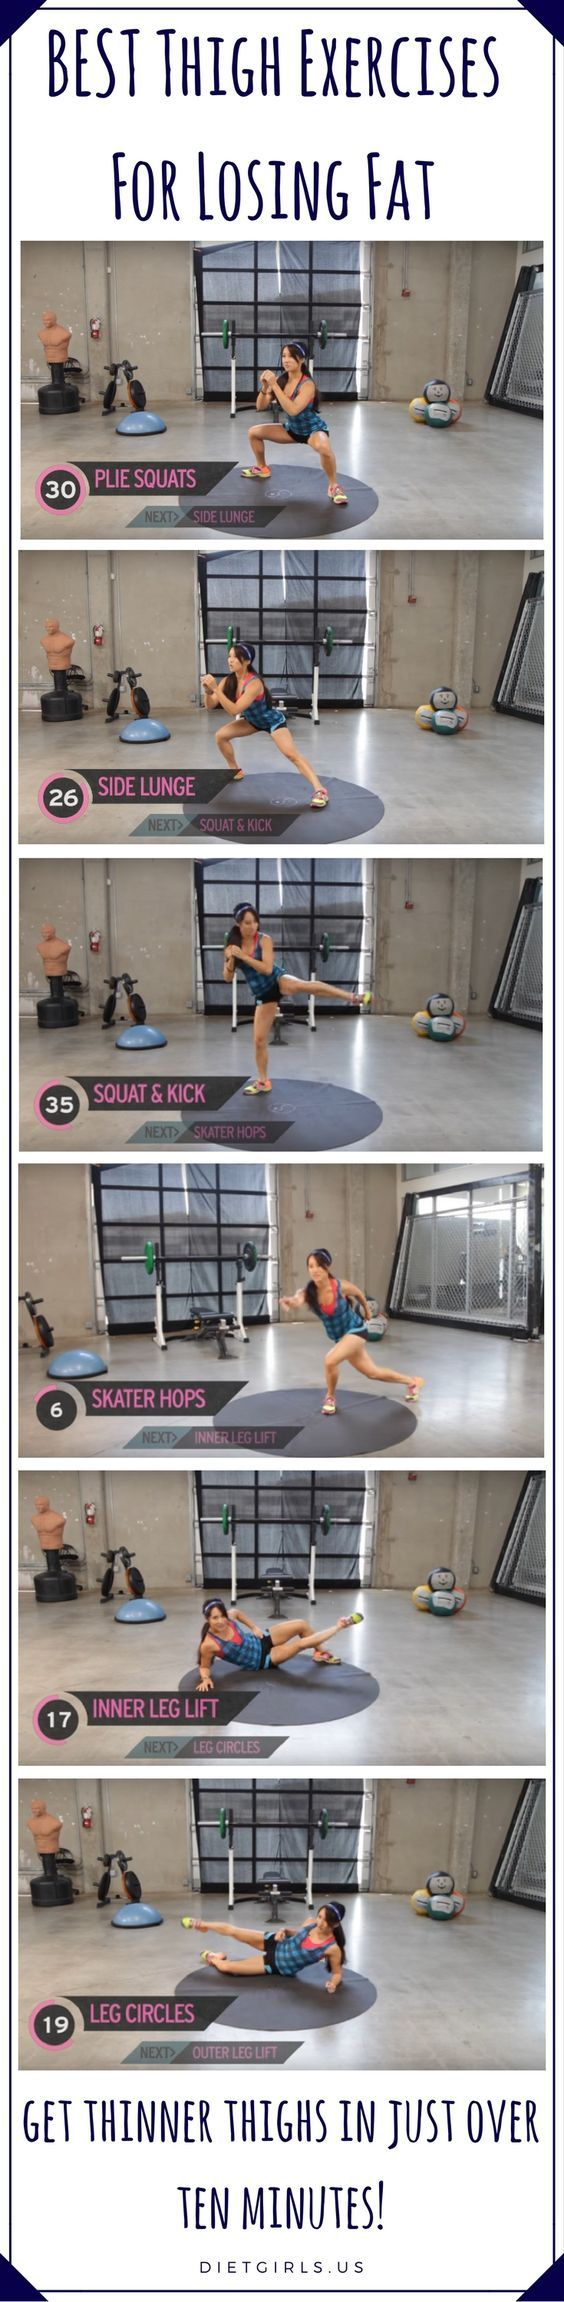 On today's episode of XHIT, fitness trainer Kelsey Lee shows you how to get thinner thighs in just over ten minutes!